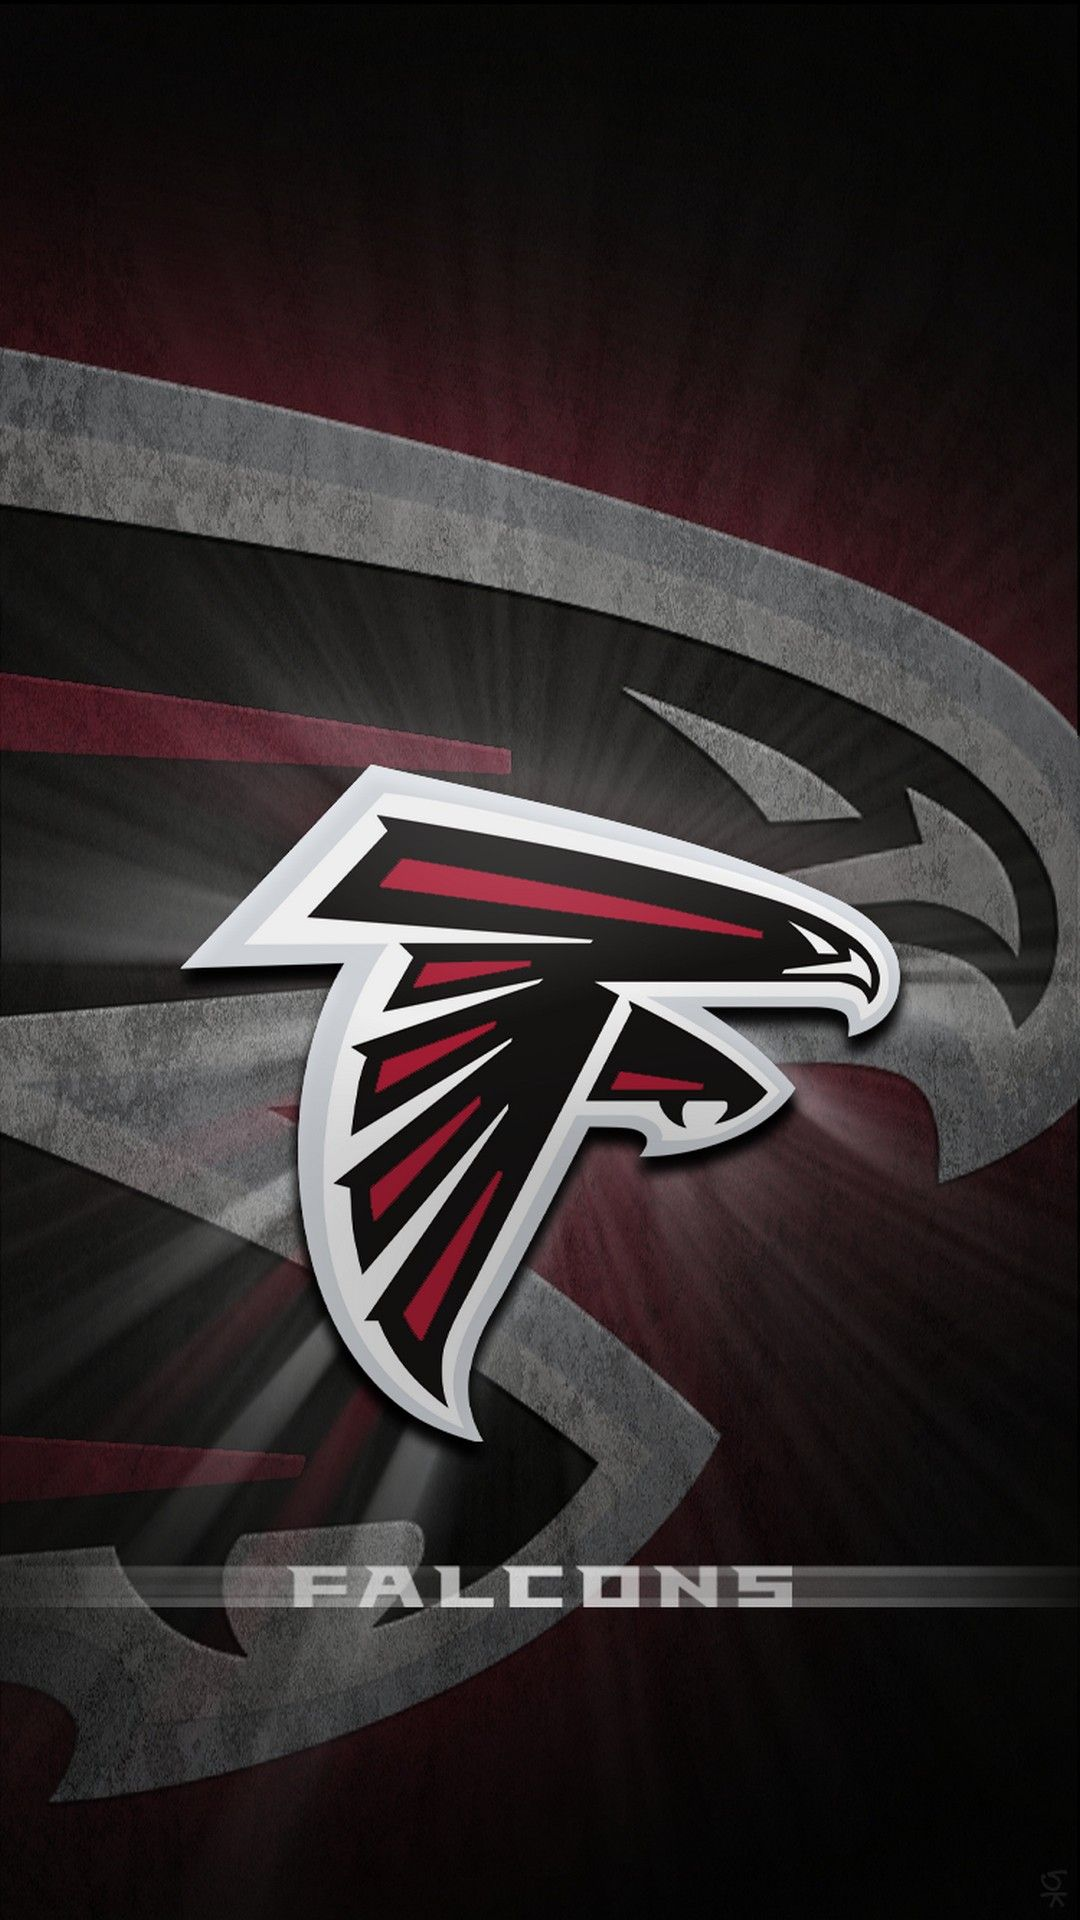 Atlanta Falcons Iphone Home Screen Wallpaper Best Nfl Wallpaper Futbol Americano Nfl Atlanta Falcons Halcon